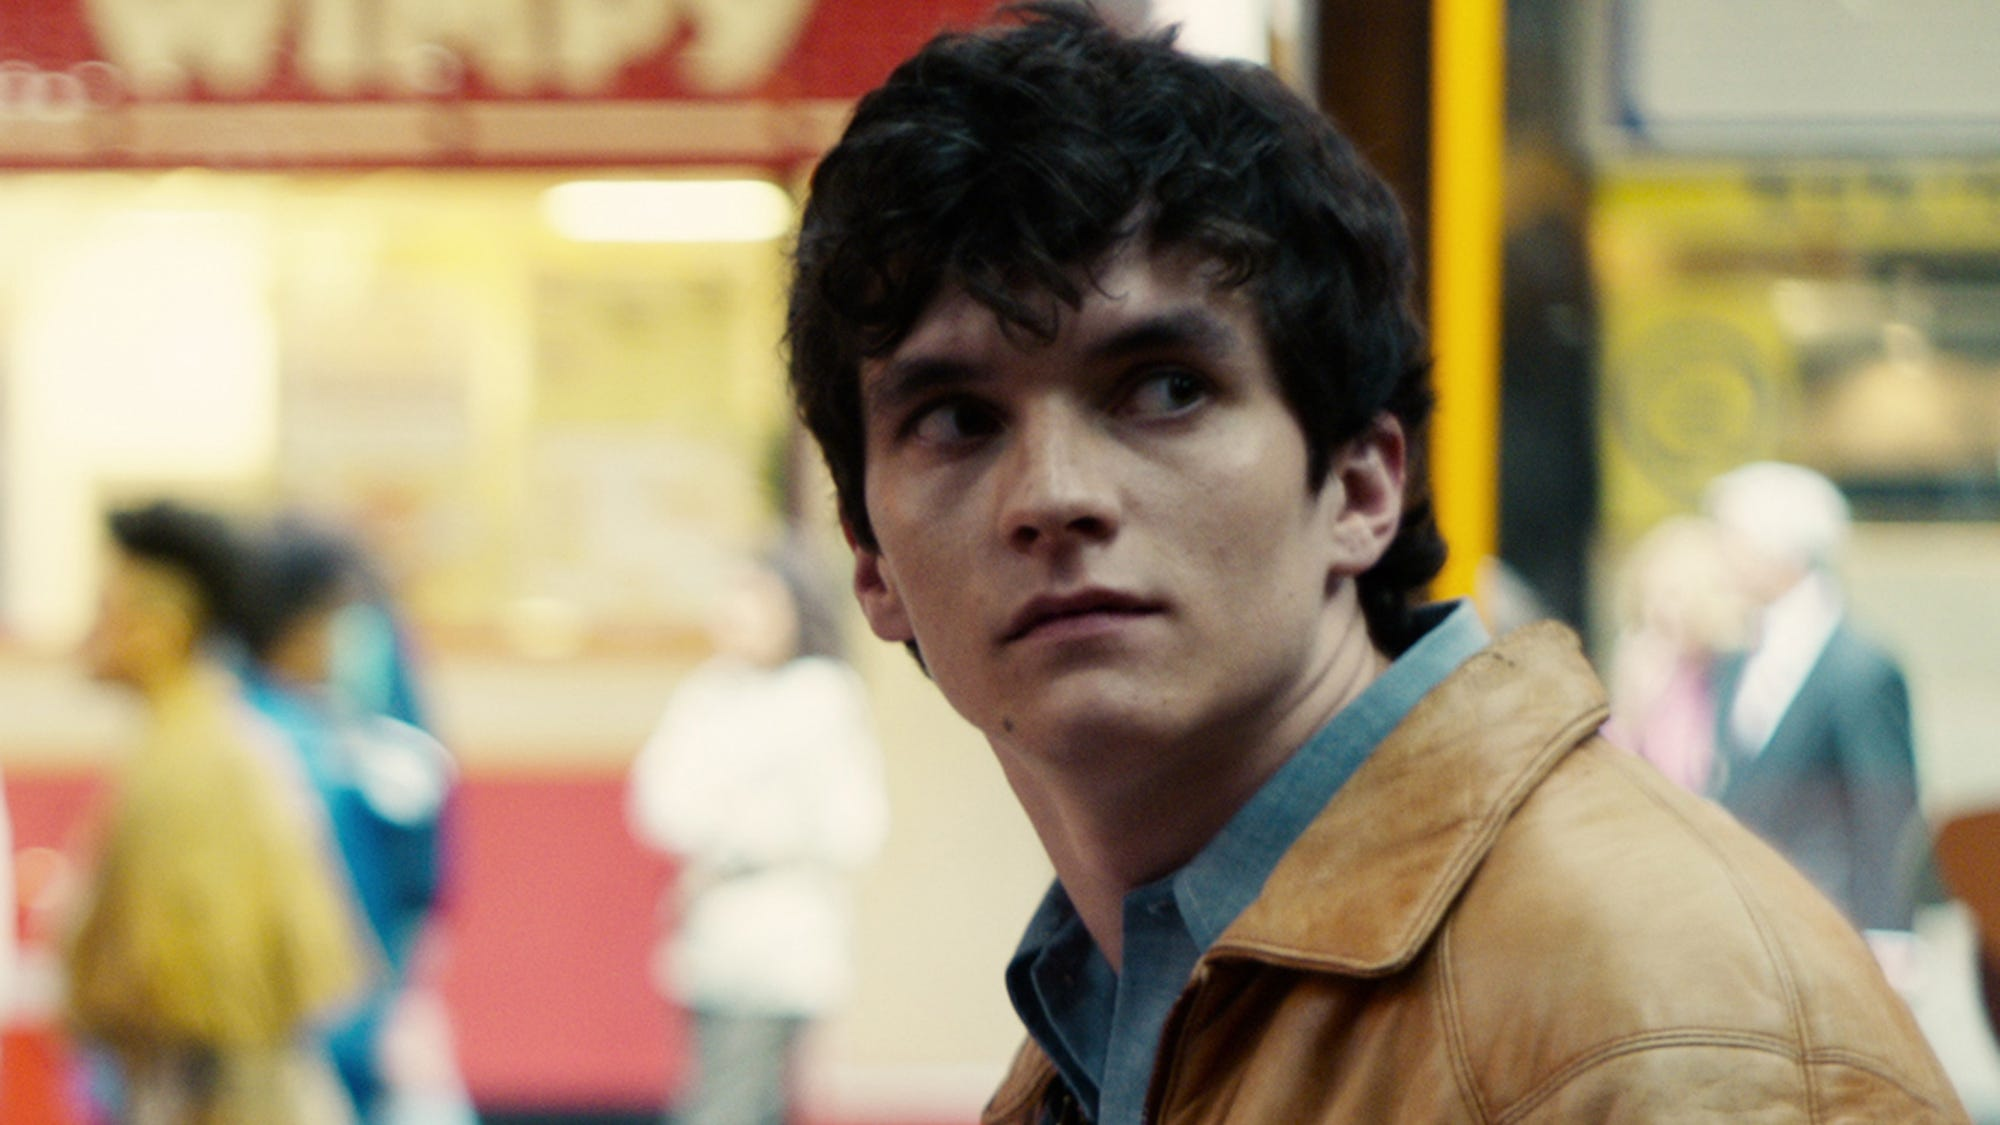 Relax: Here's Every Song In Bandersnatch, To Set The Ultimate '80s Mood